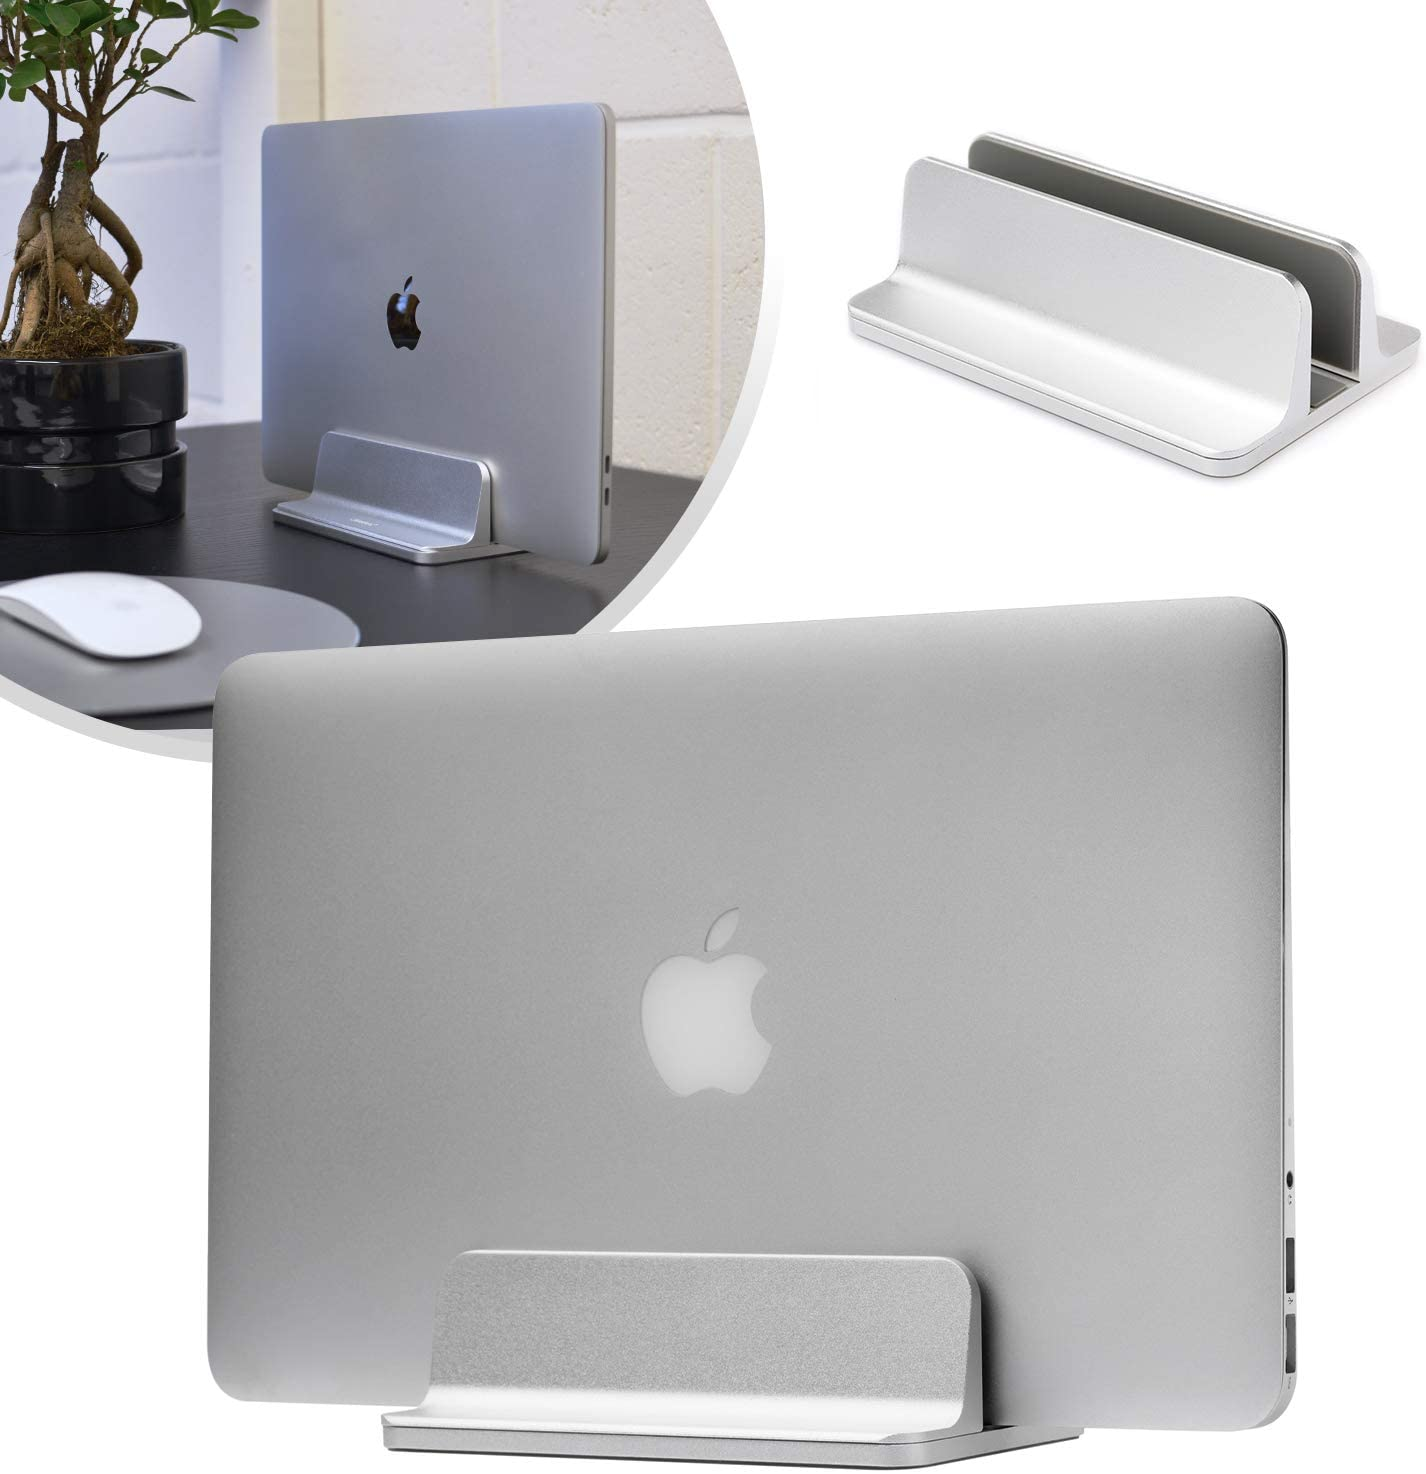 Laptop Computer Vertical Desk Stand, Adjustable Space Saving Desktop Holder Stand Compatible with Apple MacBook Notebooks Laptops - Aluminium Silver